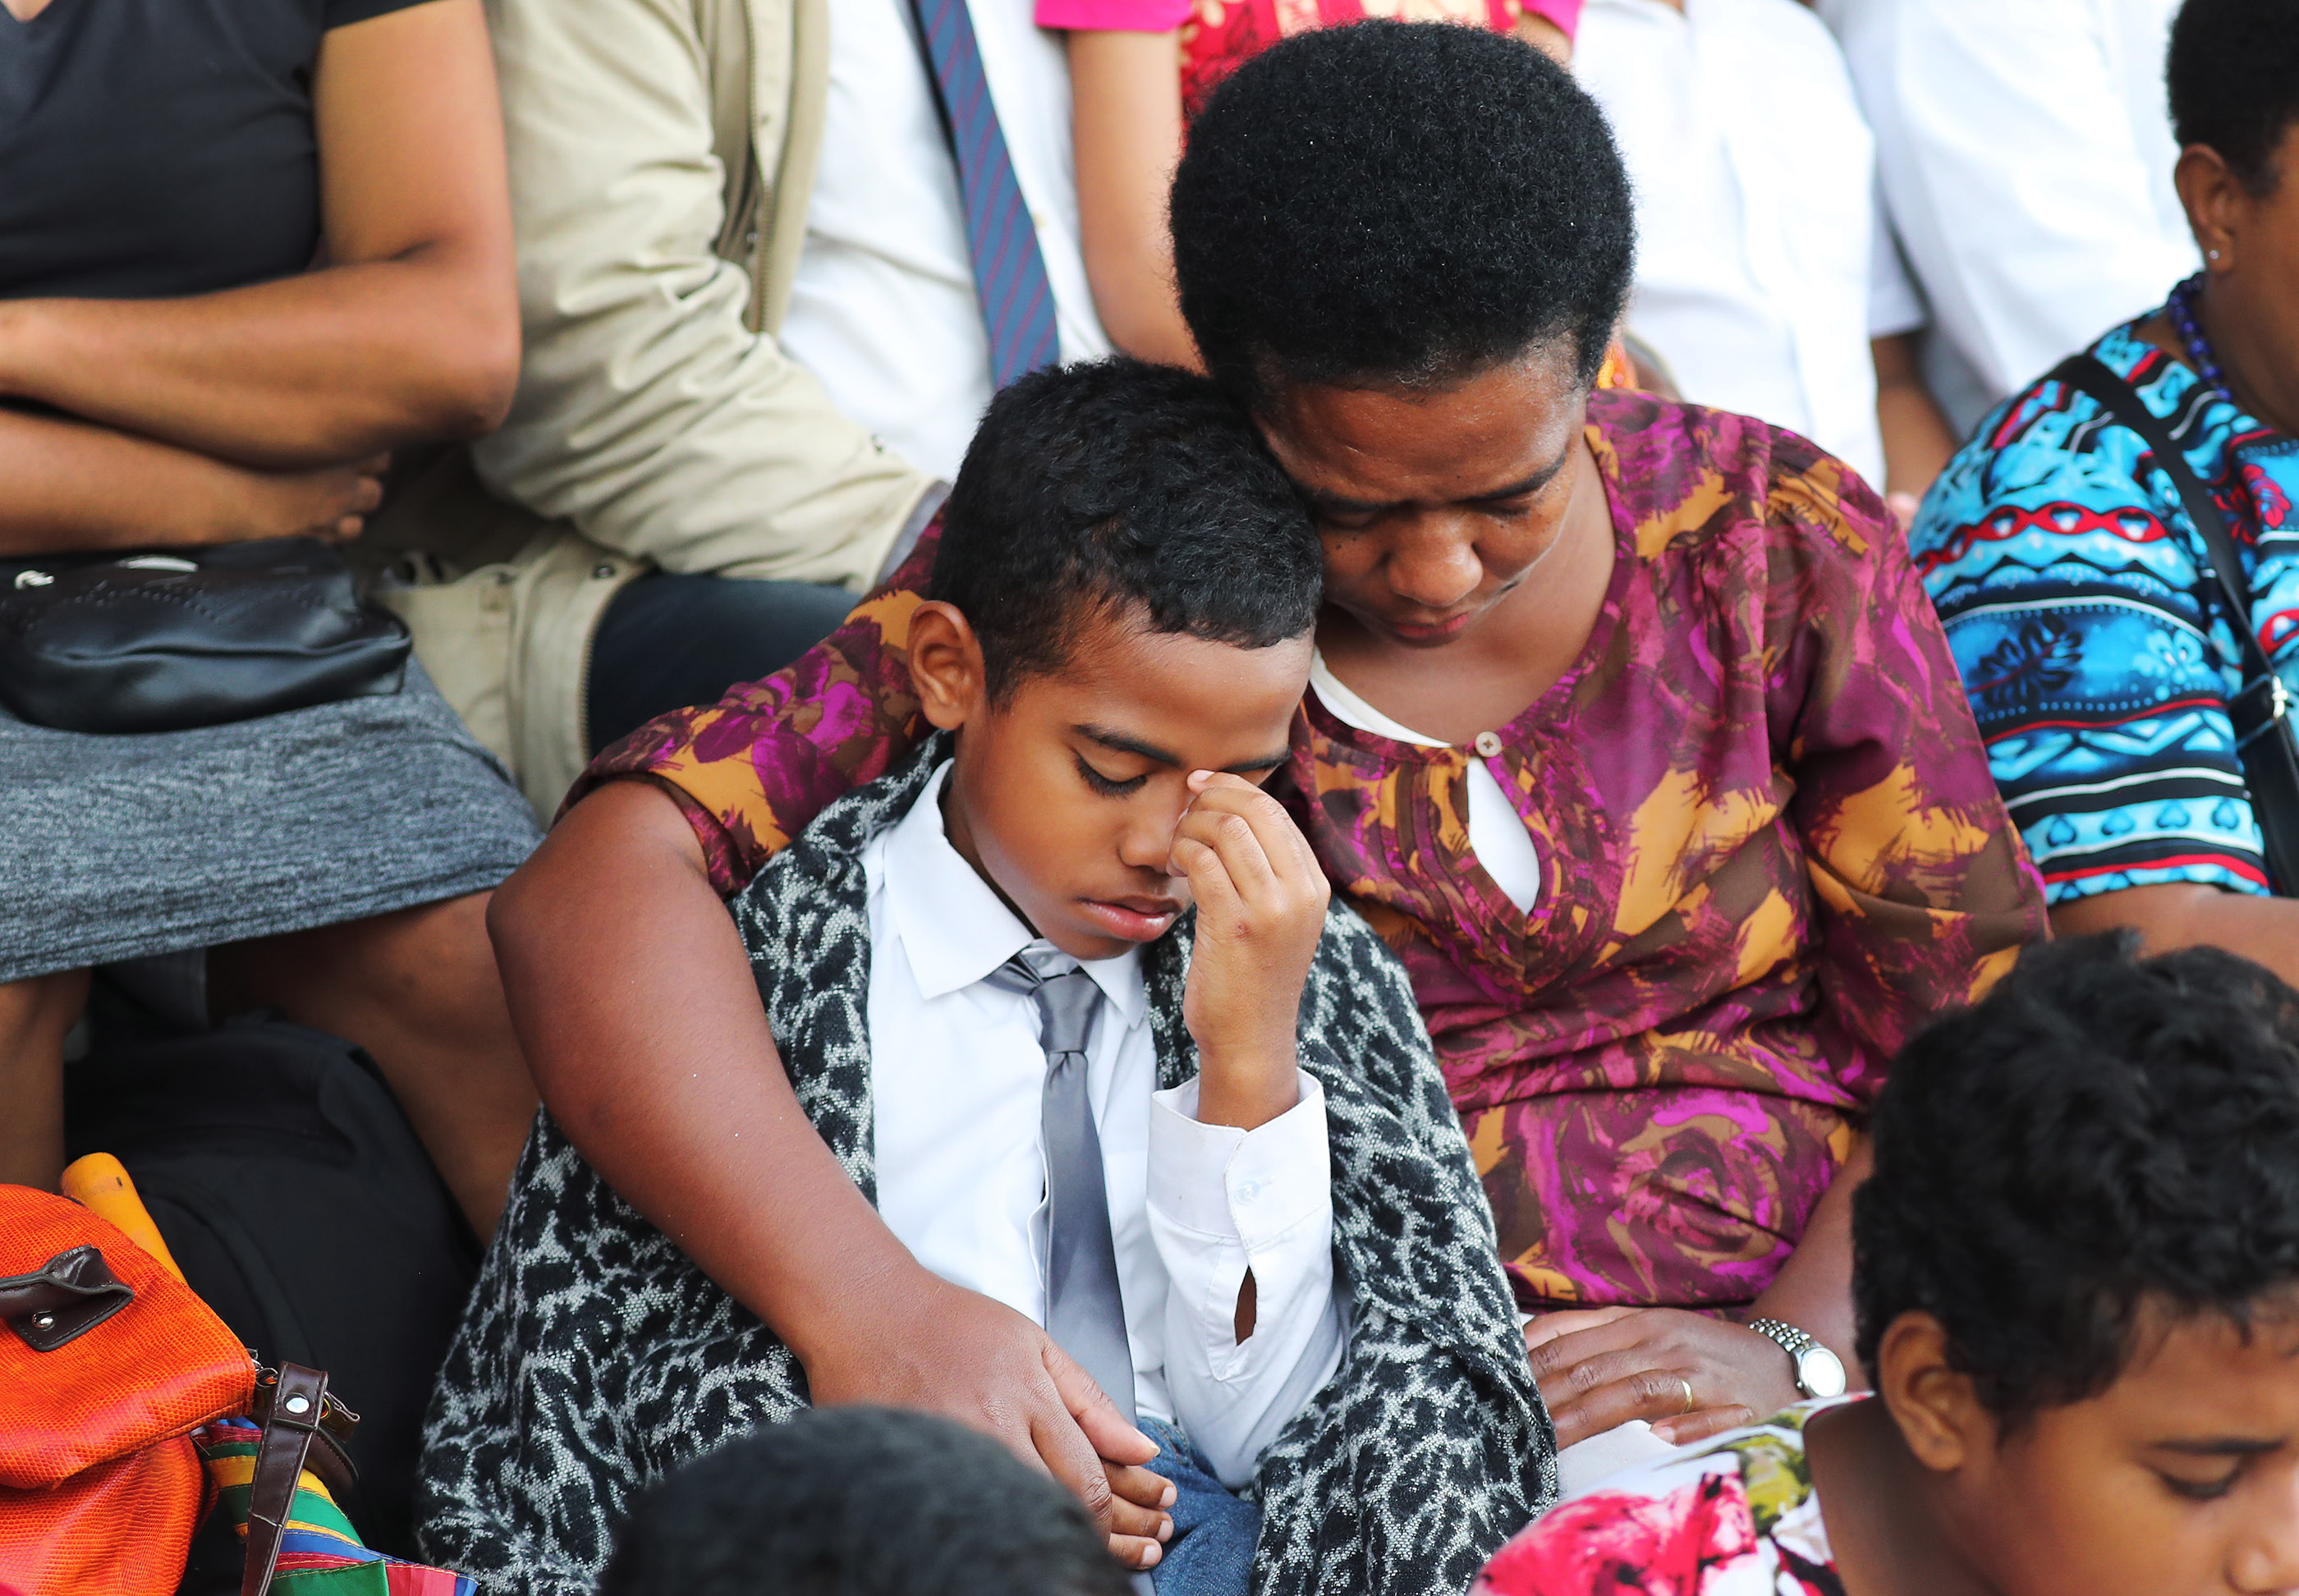 Julie Gaunavinalea and her son Sau bow their heads during the prayer during a devotional at Ratu Cakobau Park stadium in Nausori, Fiji, on May 22, 2019.